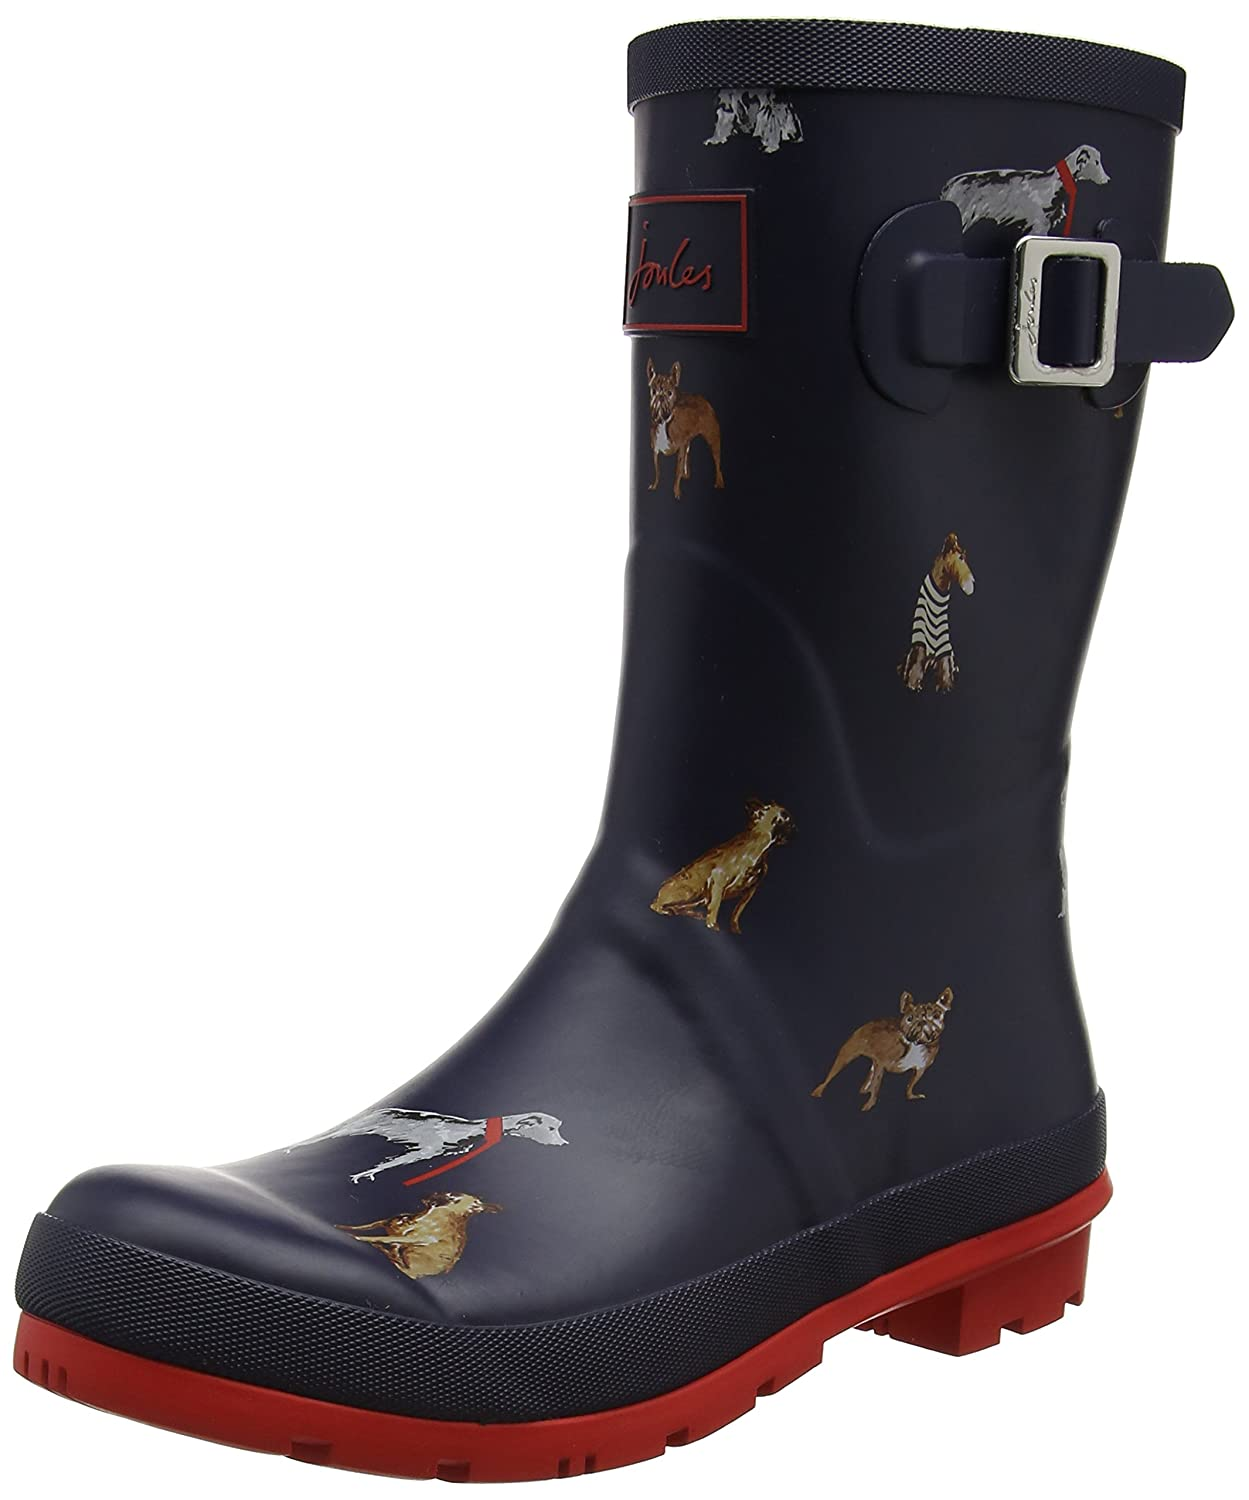 Joules Women's Molly Welly Rain Boot B071VH4HF8 6 B(M) US French Navy Chic Dogs